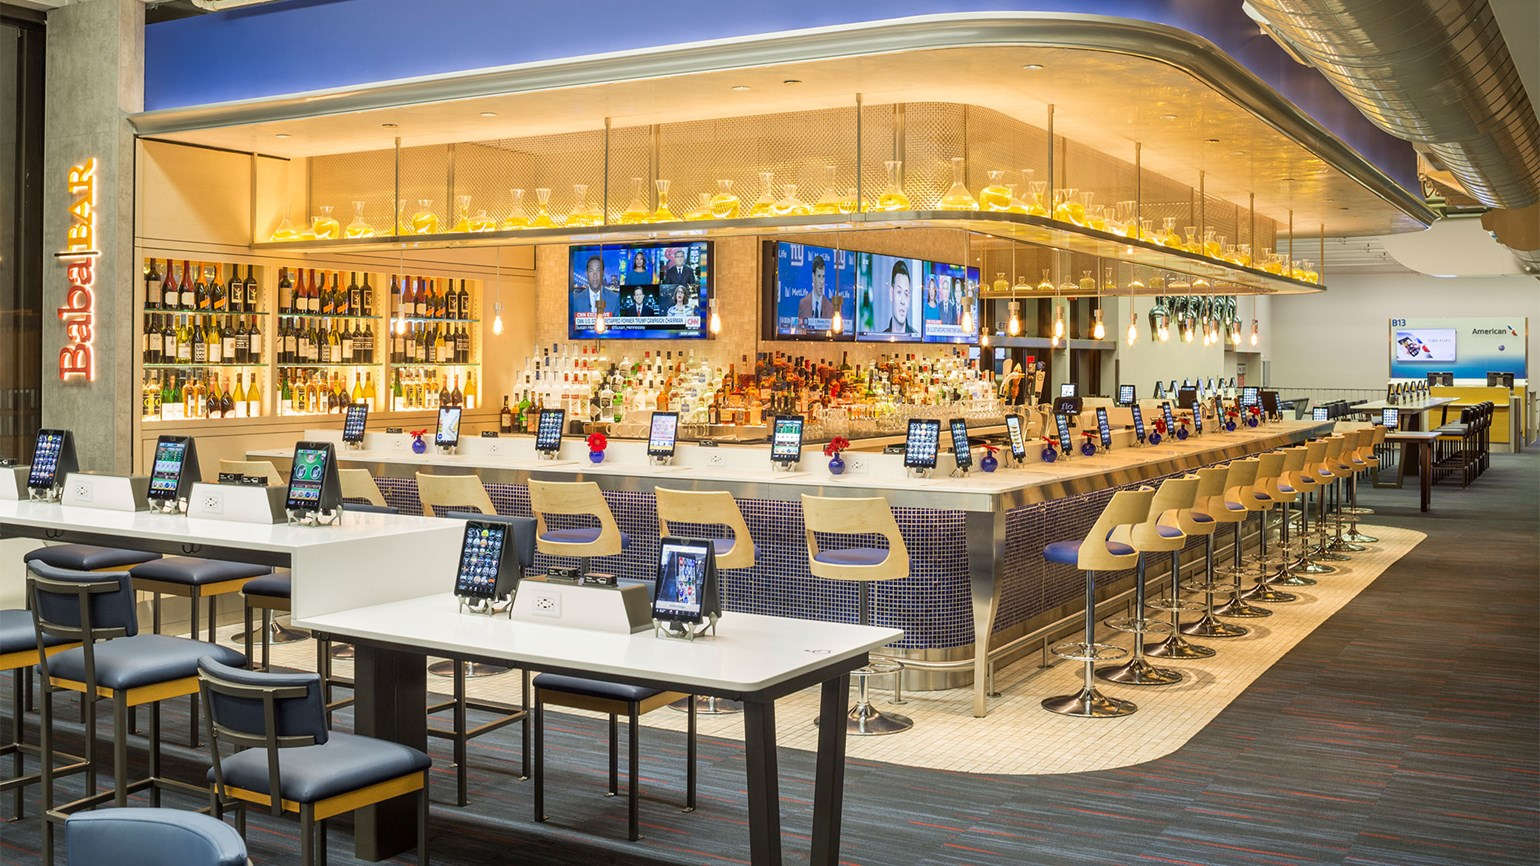 Philadelphia Airport S Terminal B Gets Otg Ipad Restaurants